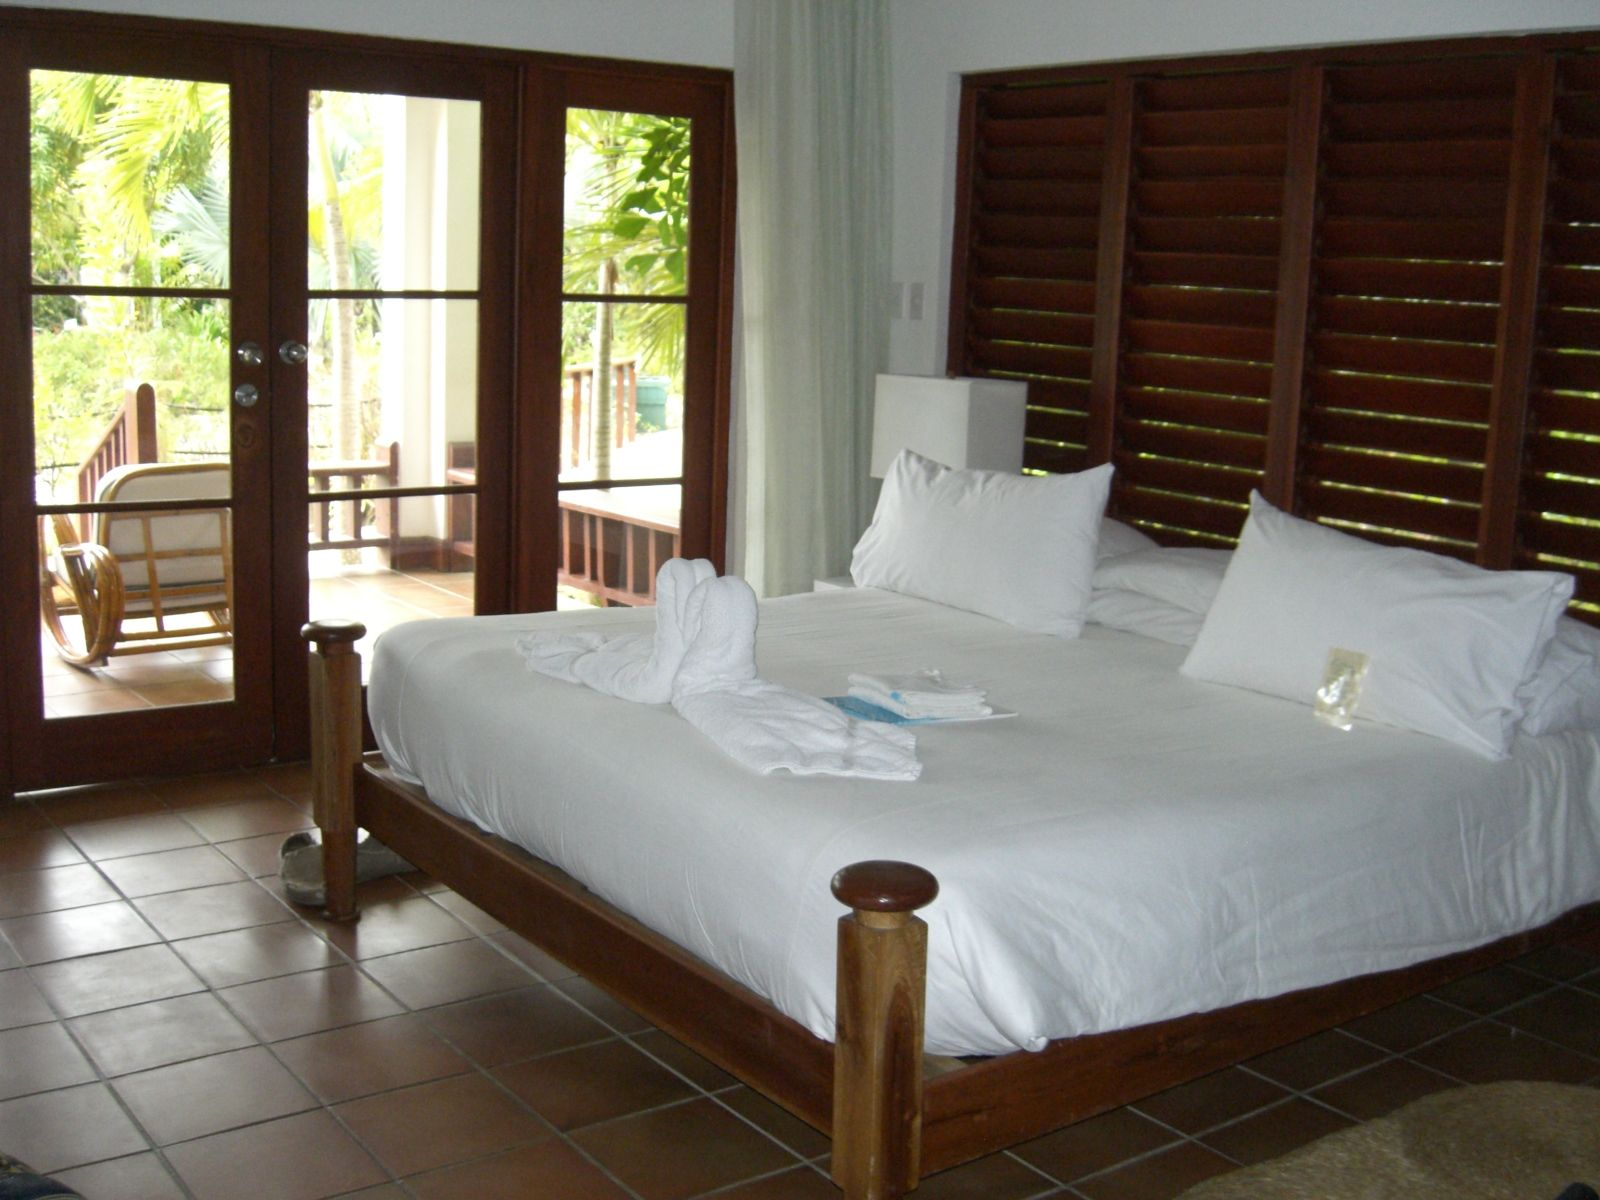 Couples Swept Away We Love The Rooms On The Corners With Images Couples Swept Away Jamaica Honeymoon Couples Resorts